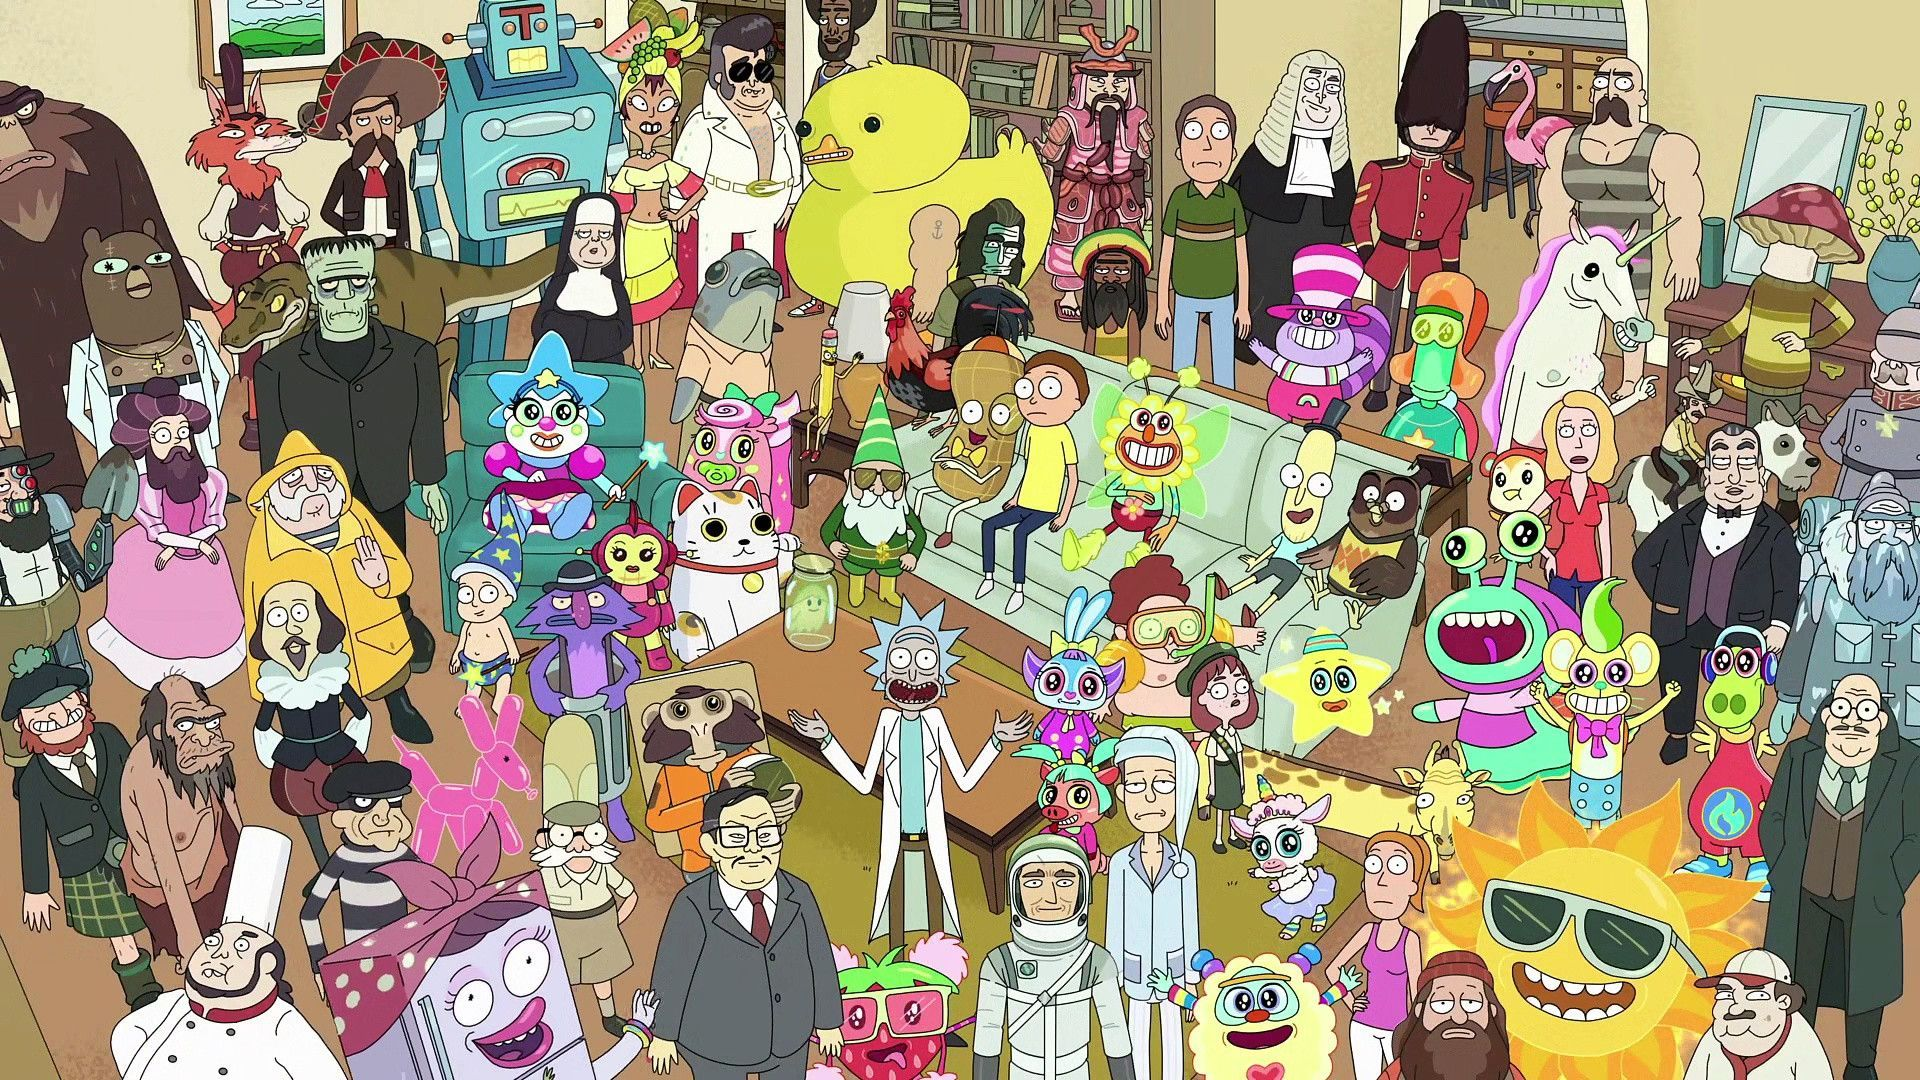 Rick And Morty Characters Wallpapers Top Free Rick And Morty Characters Backgrounds Wallpaperaccess